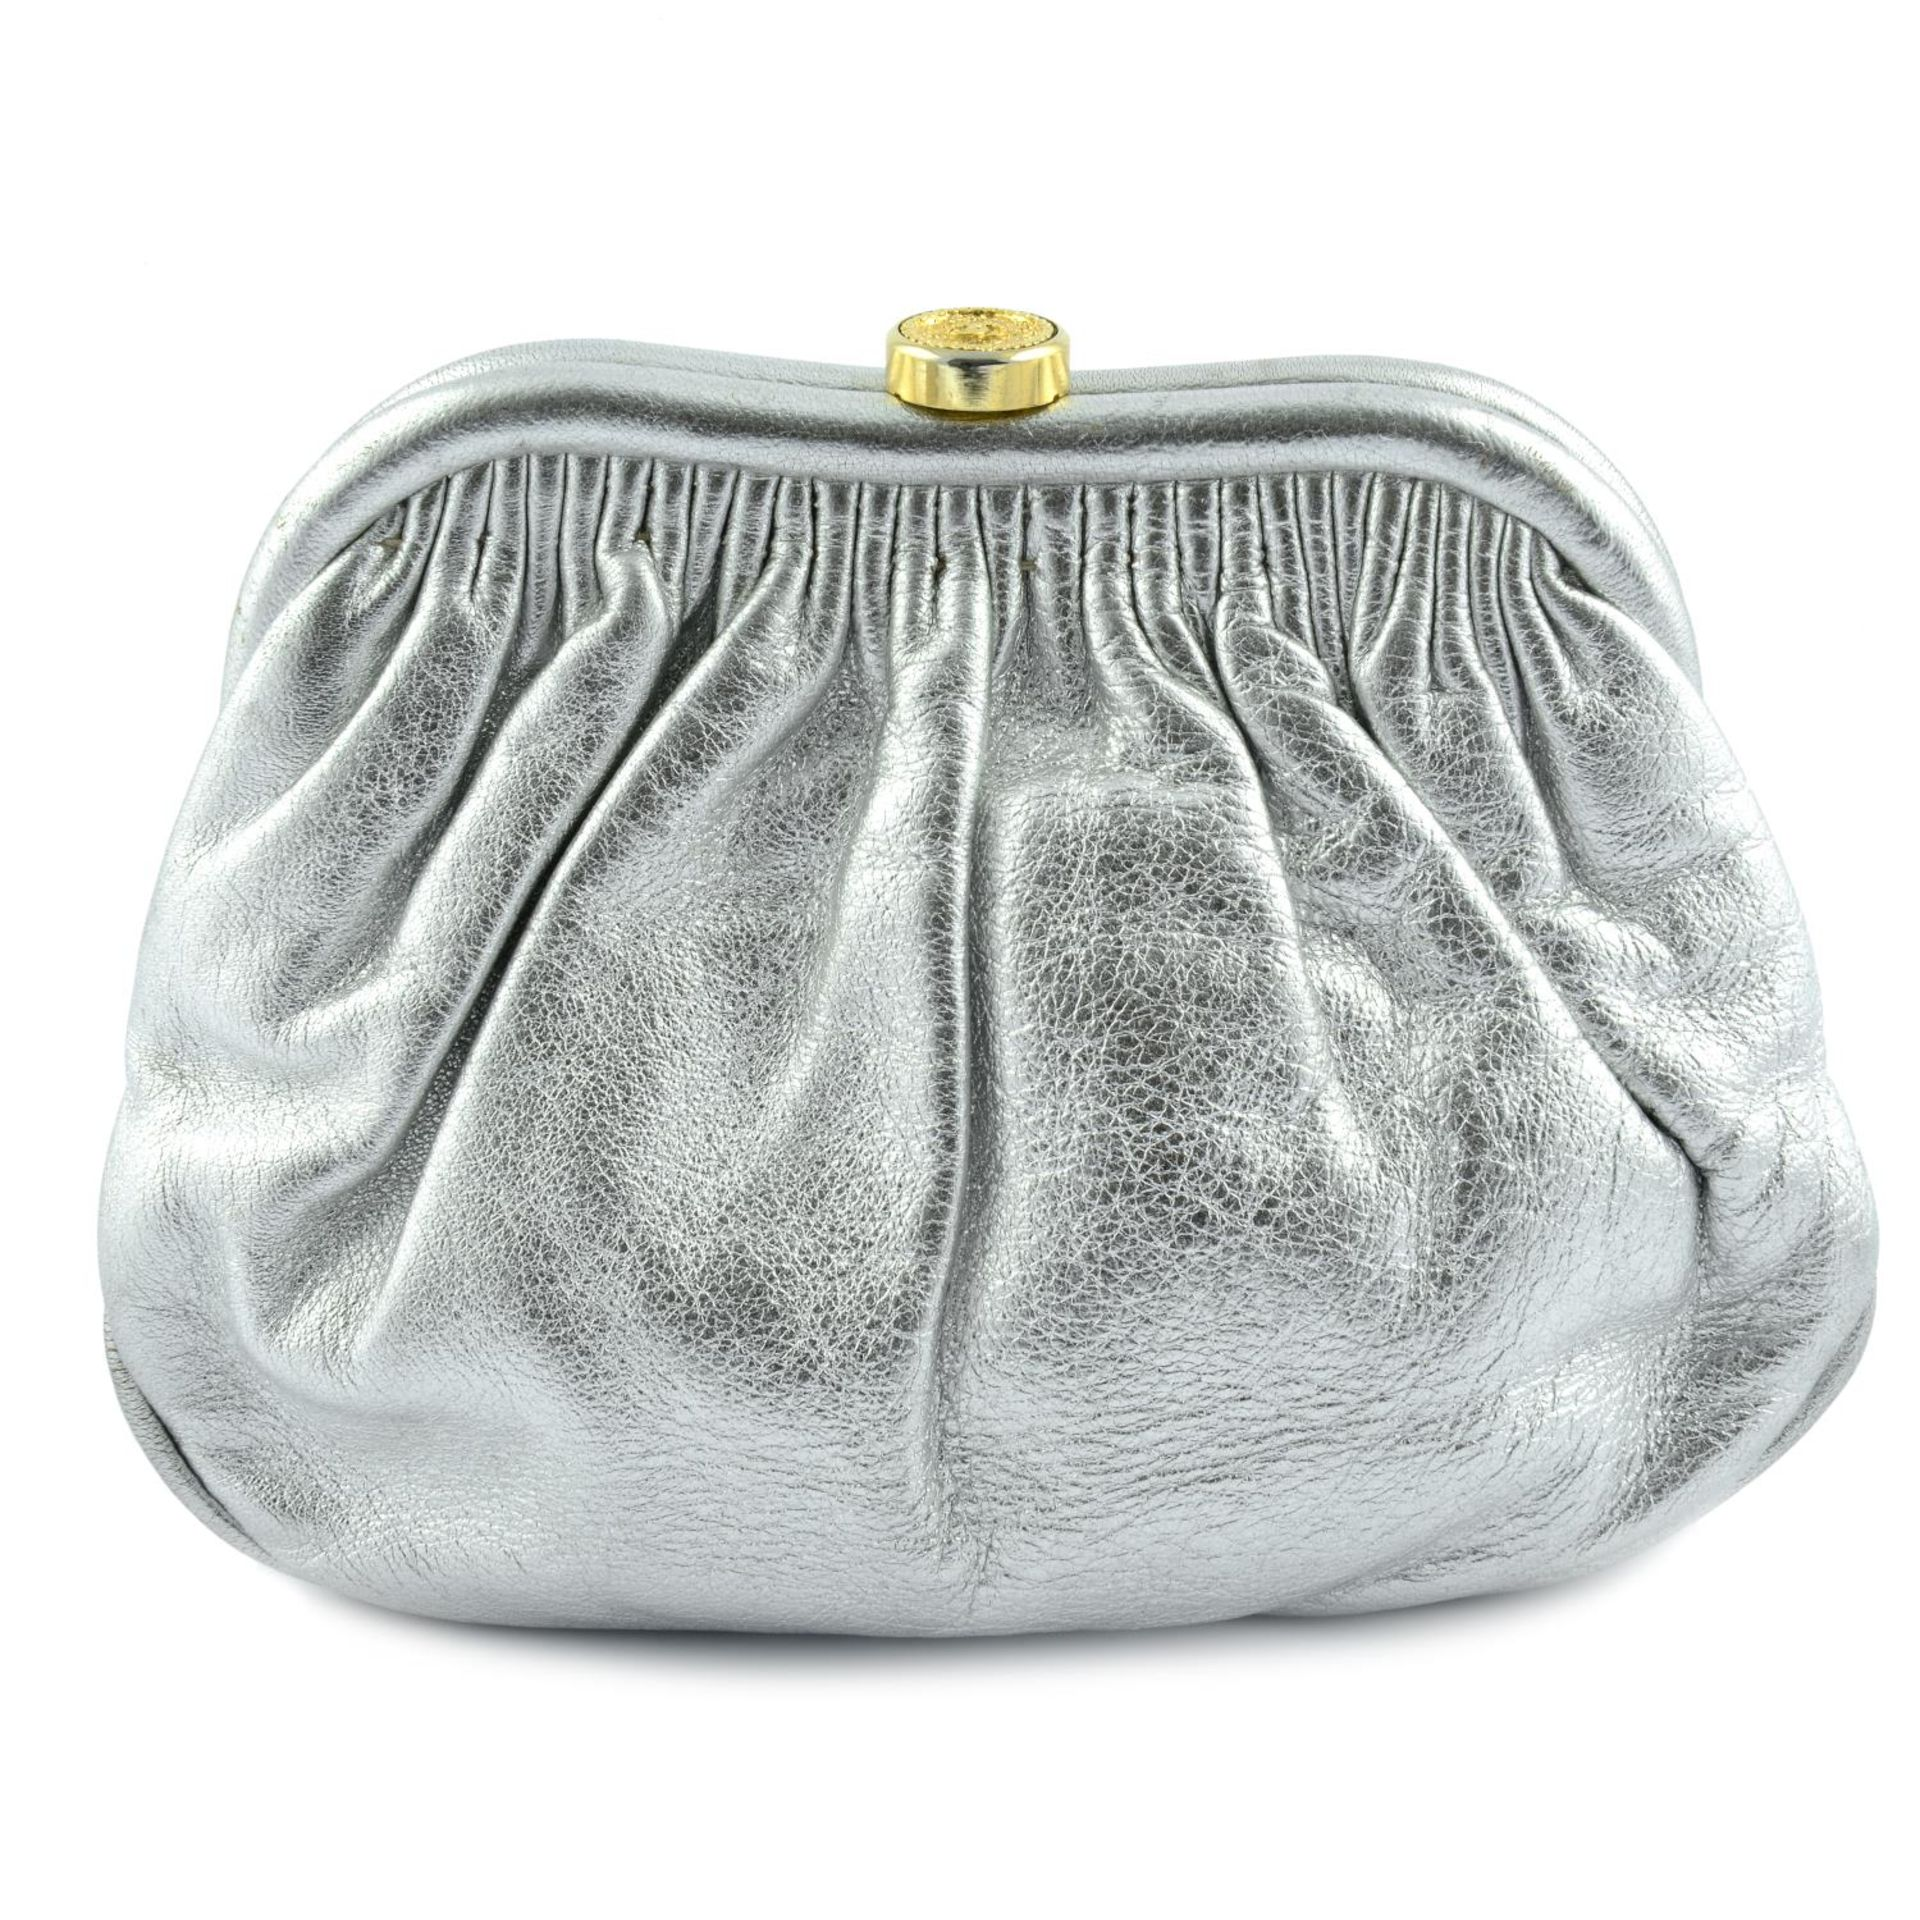 CHANEL - a vintage metallic kiss-lock clutch with chain. - Image 2 of 6